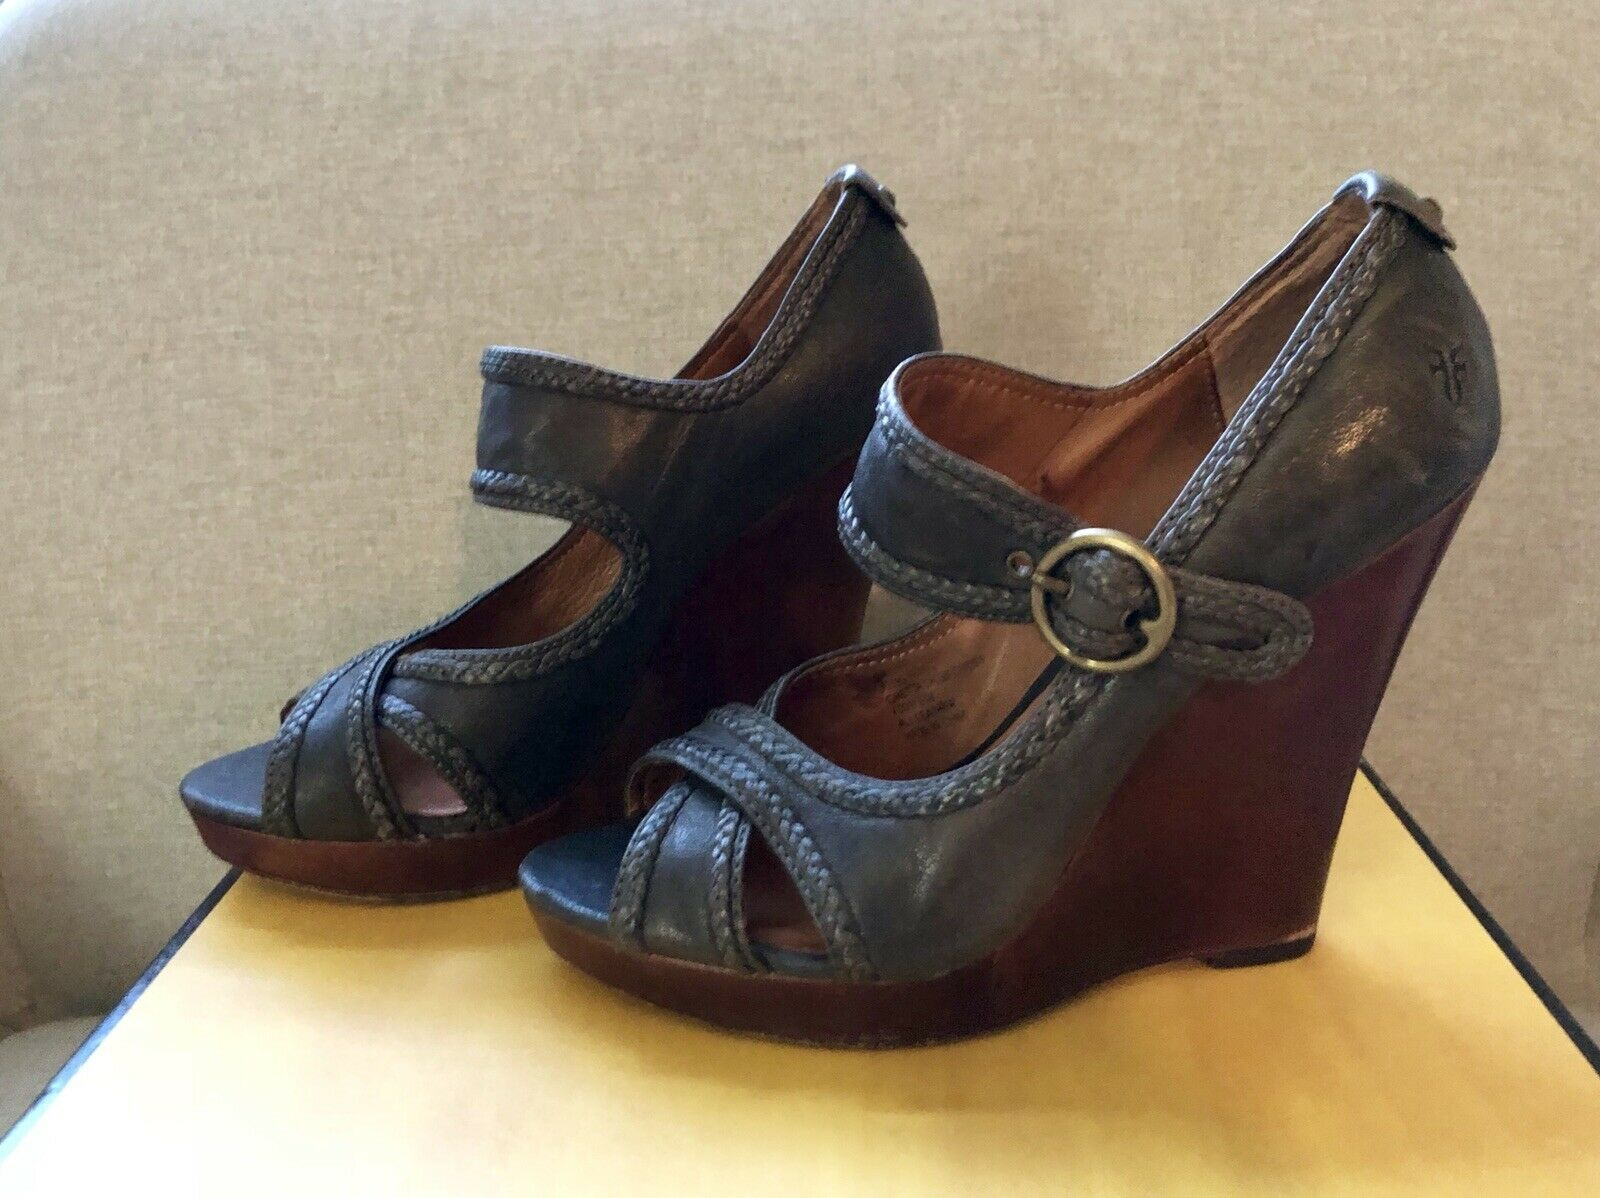 FRYE Gretta Criss Criss Criss Cross Grey Leather Wedges Sz 6M 4c8d69